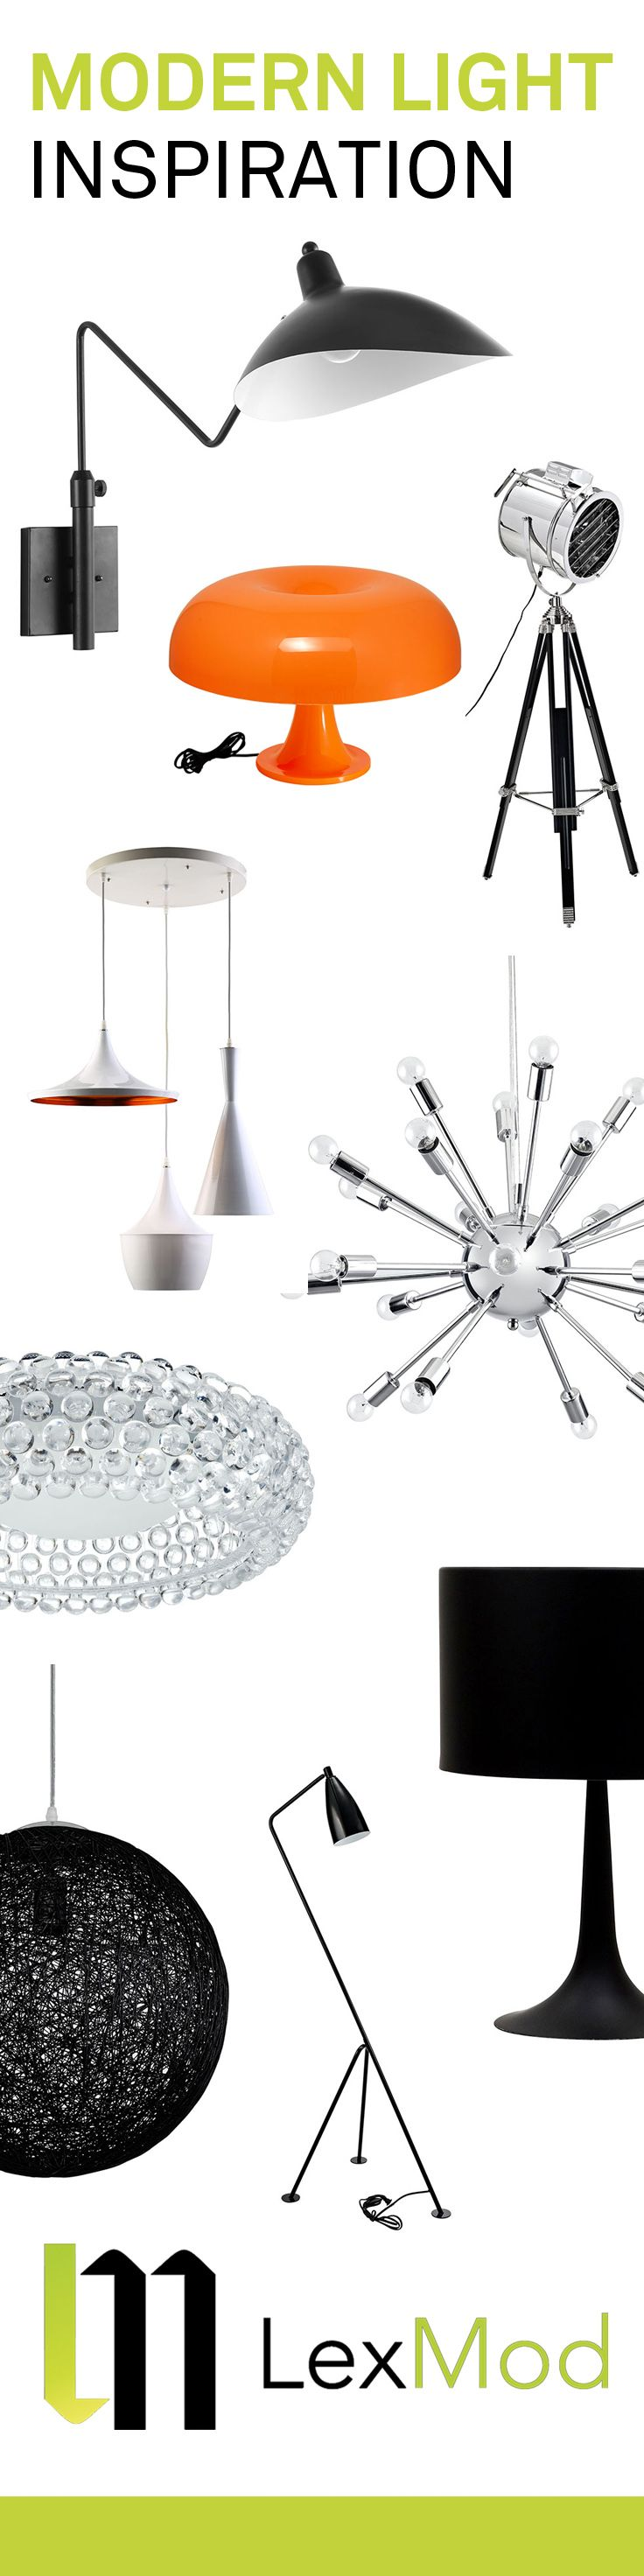 Best 8 Caboche Ceiling Light images on Pinterest